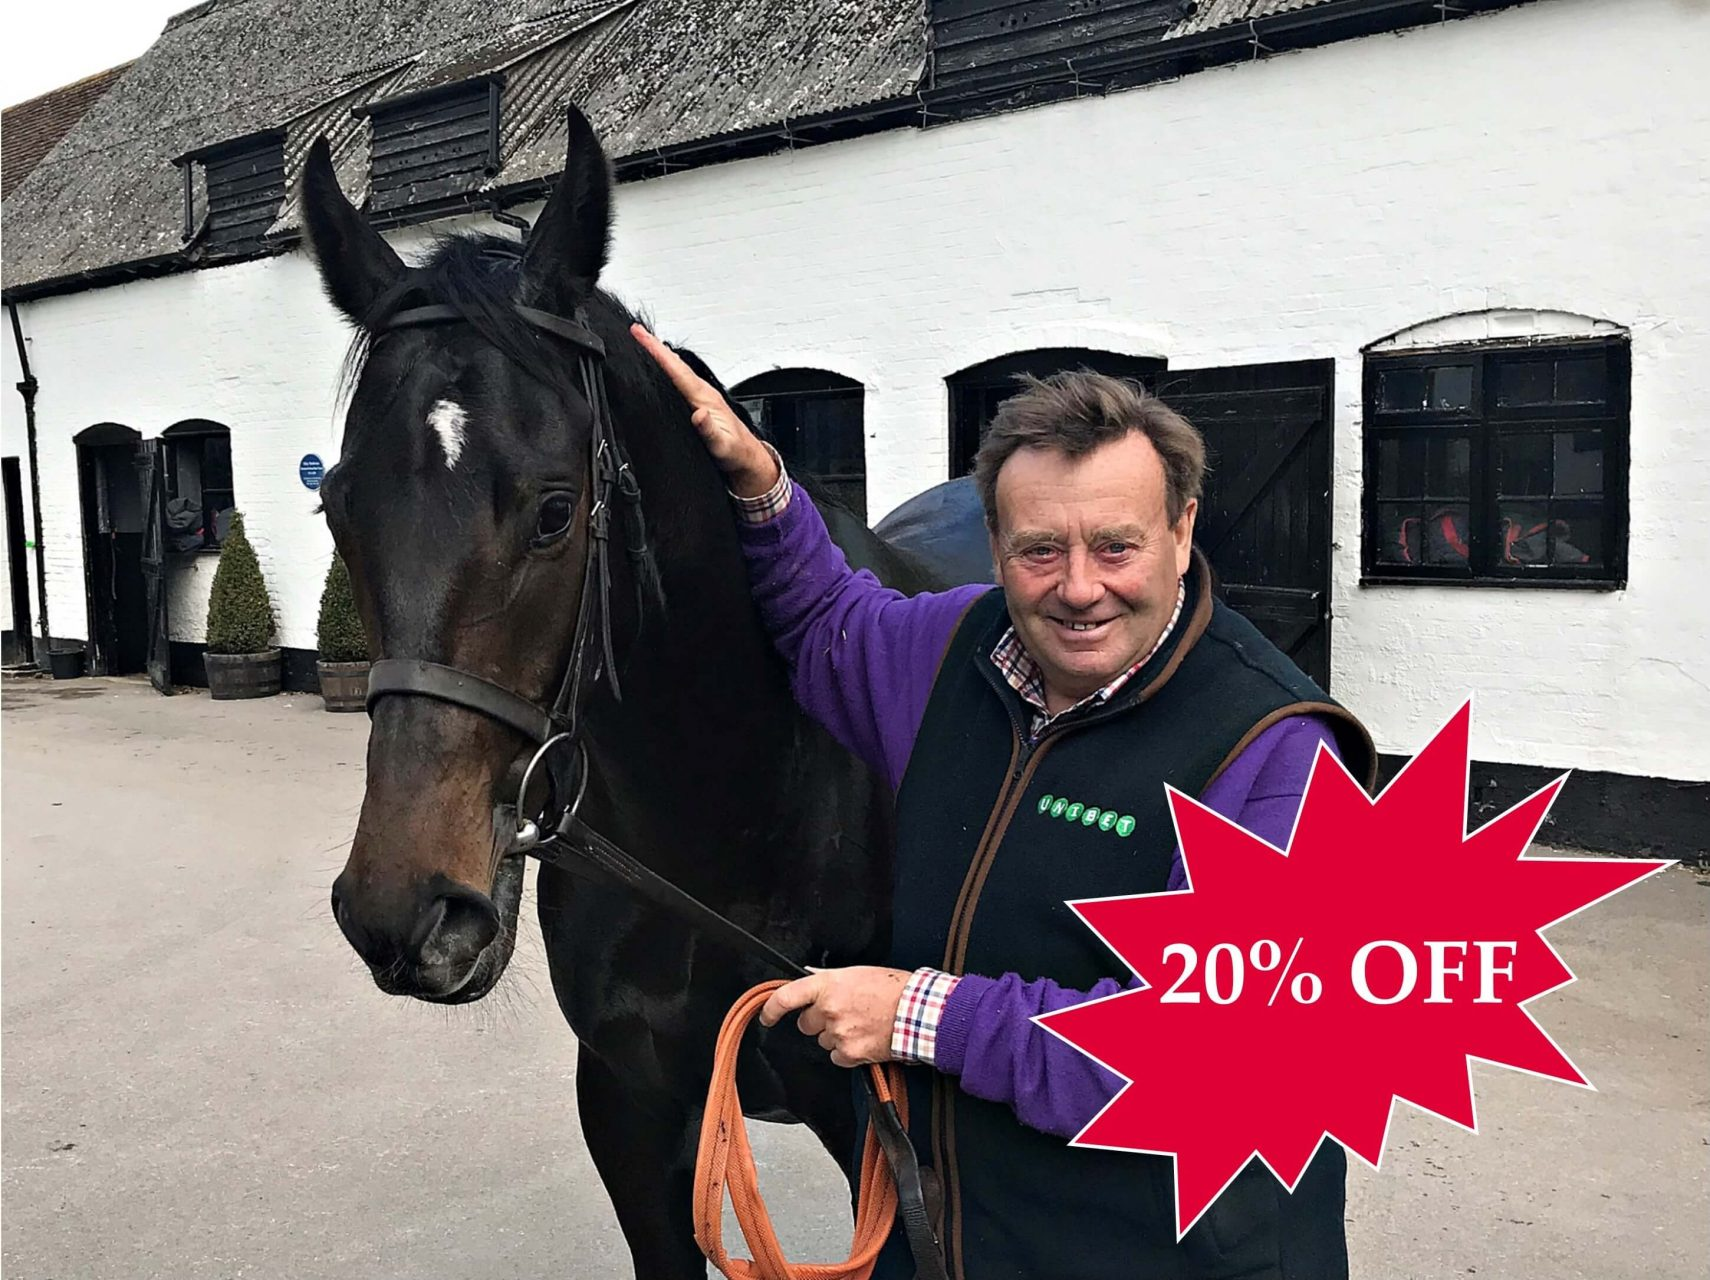 20% OFF ARCADIAN PEARL RACEHORSE SYNDICATE TRAINED BY NICKY HENDERSON